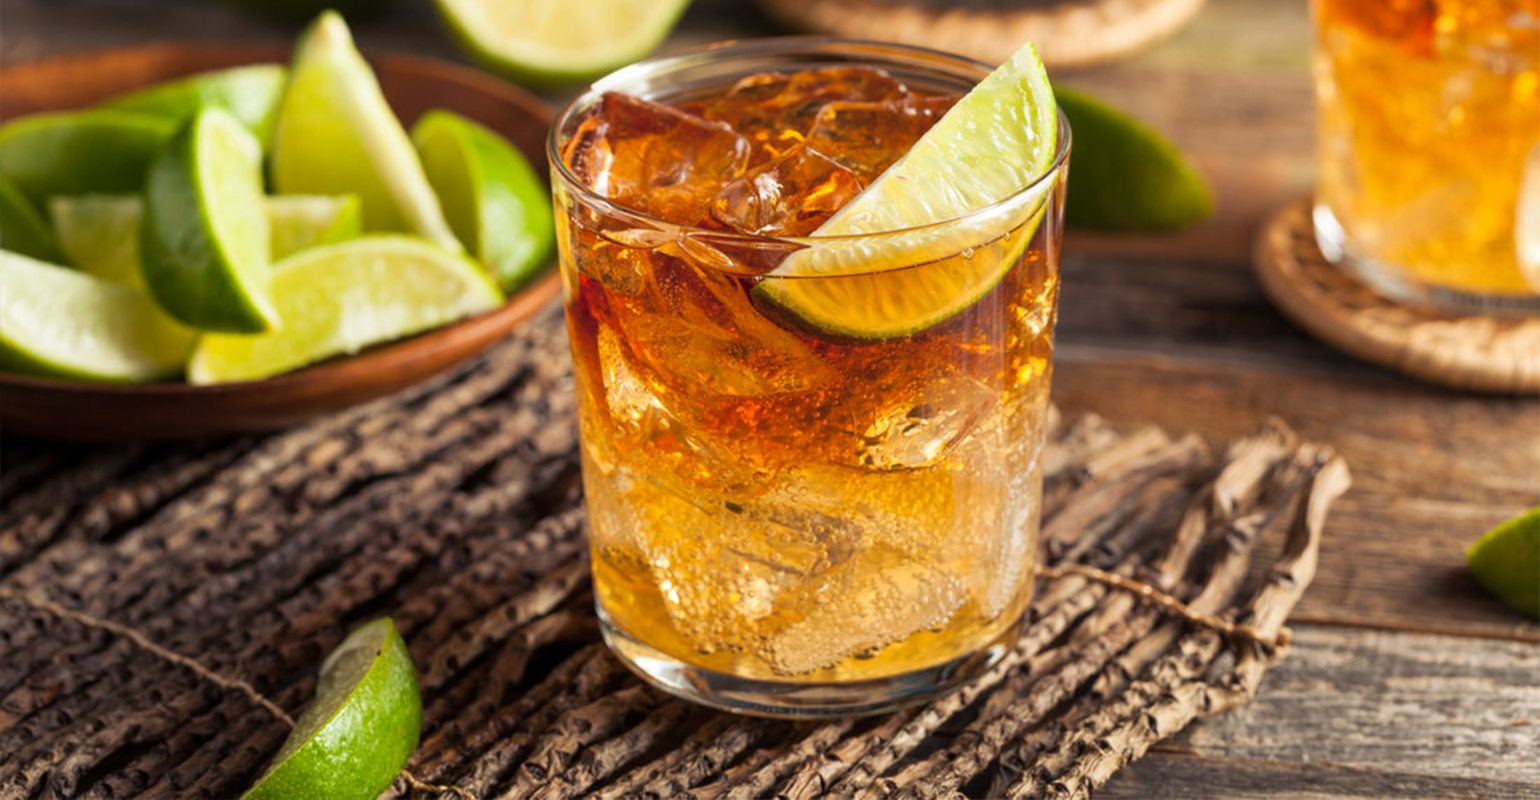 Diplomático Rum To Help Limit Food Waste In Markets Across The Country photo